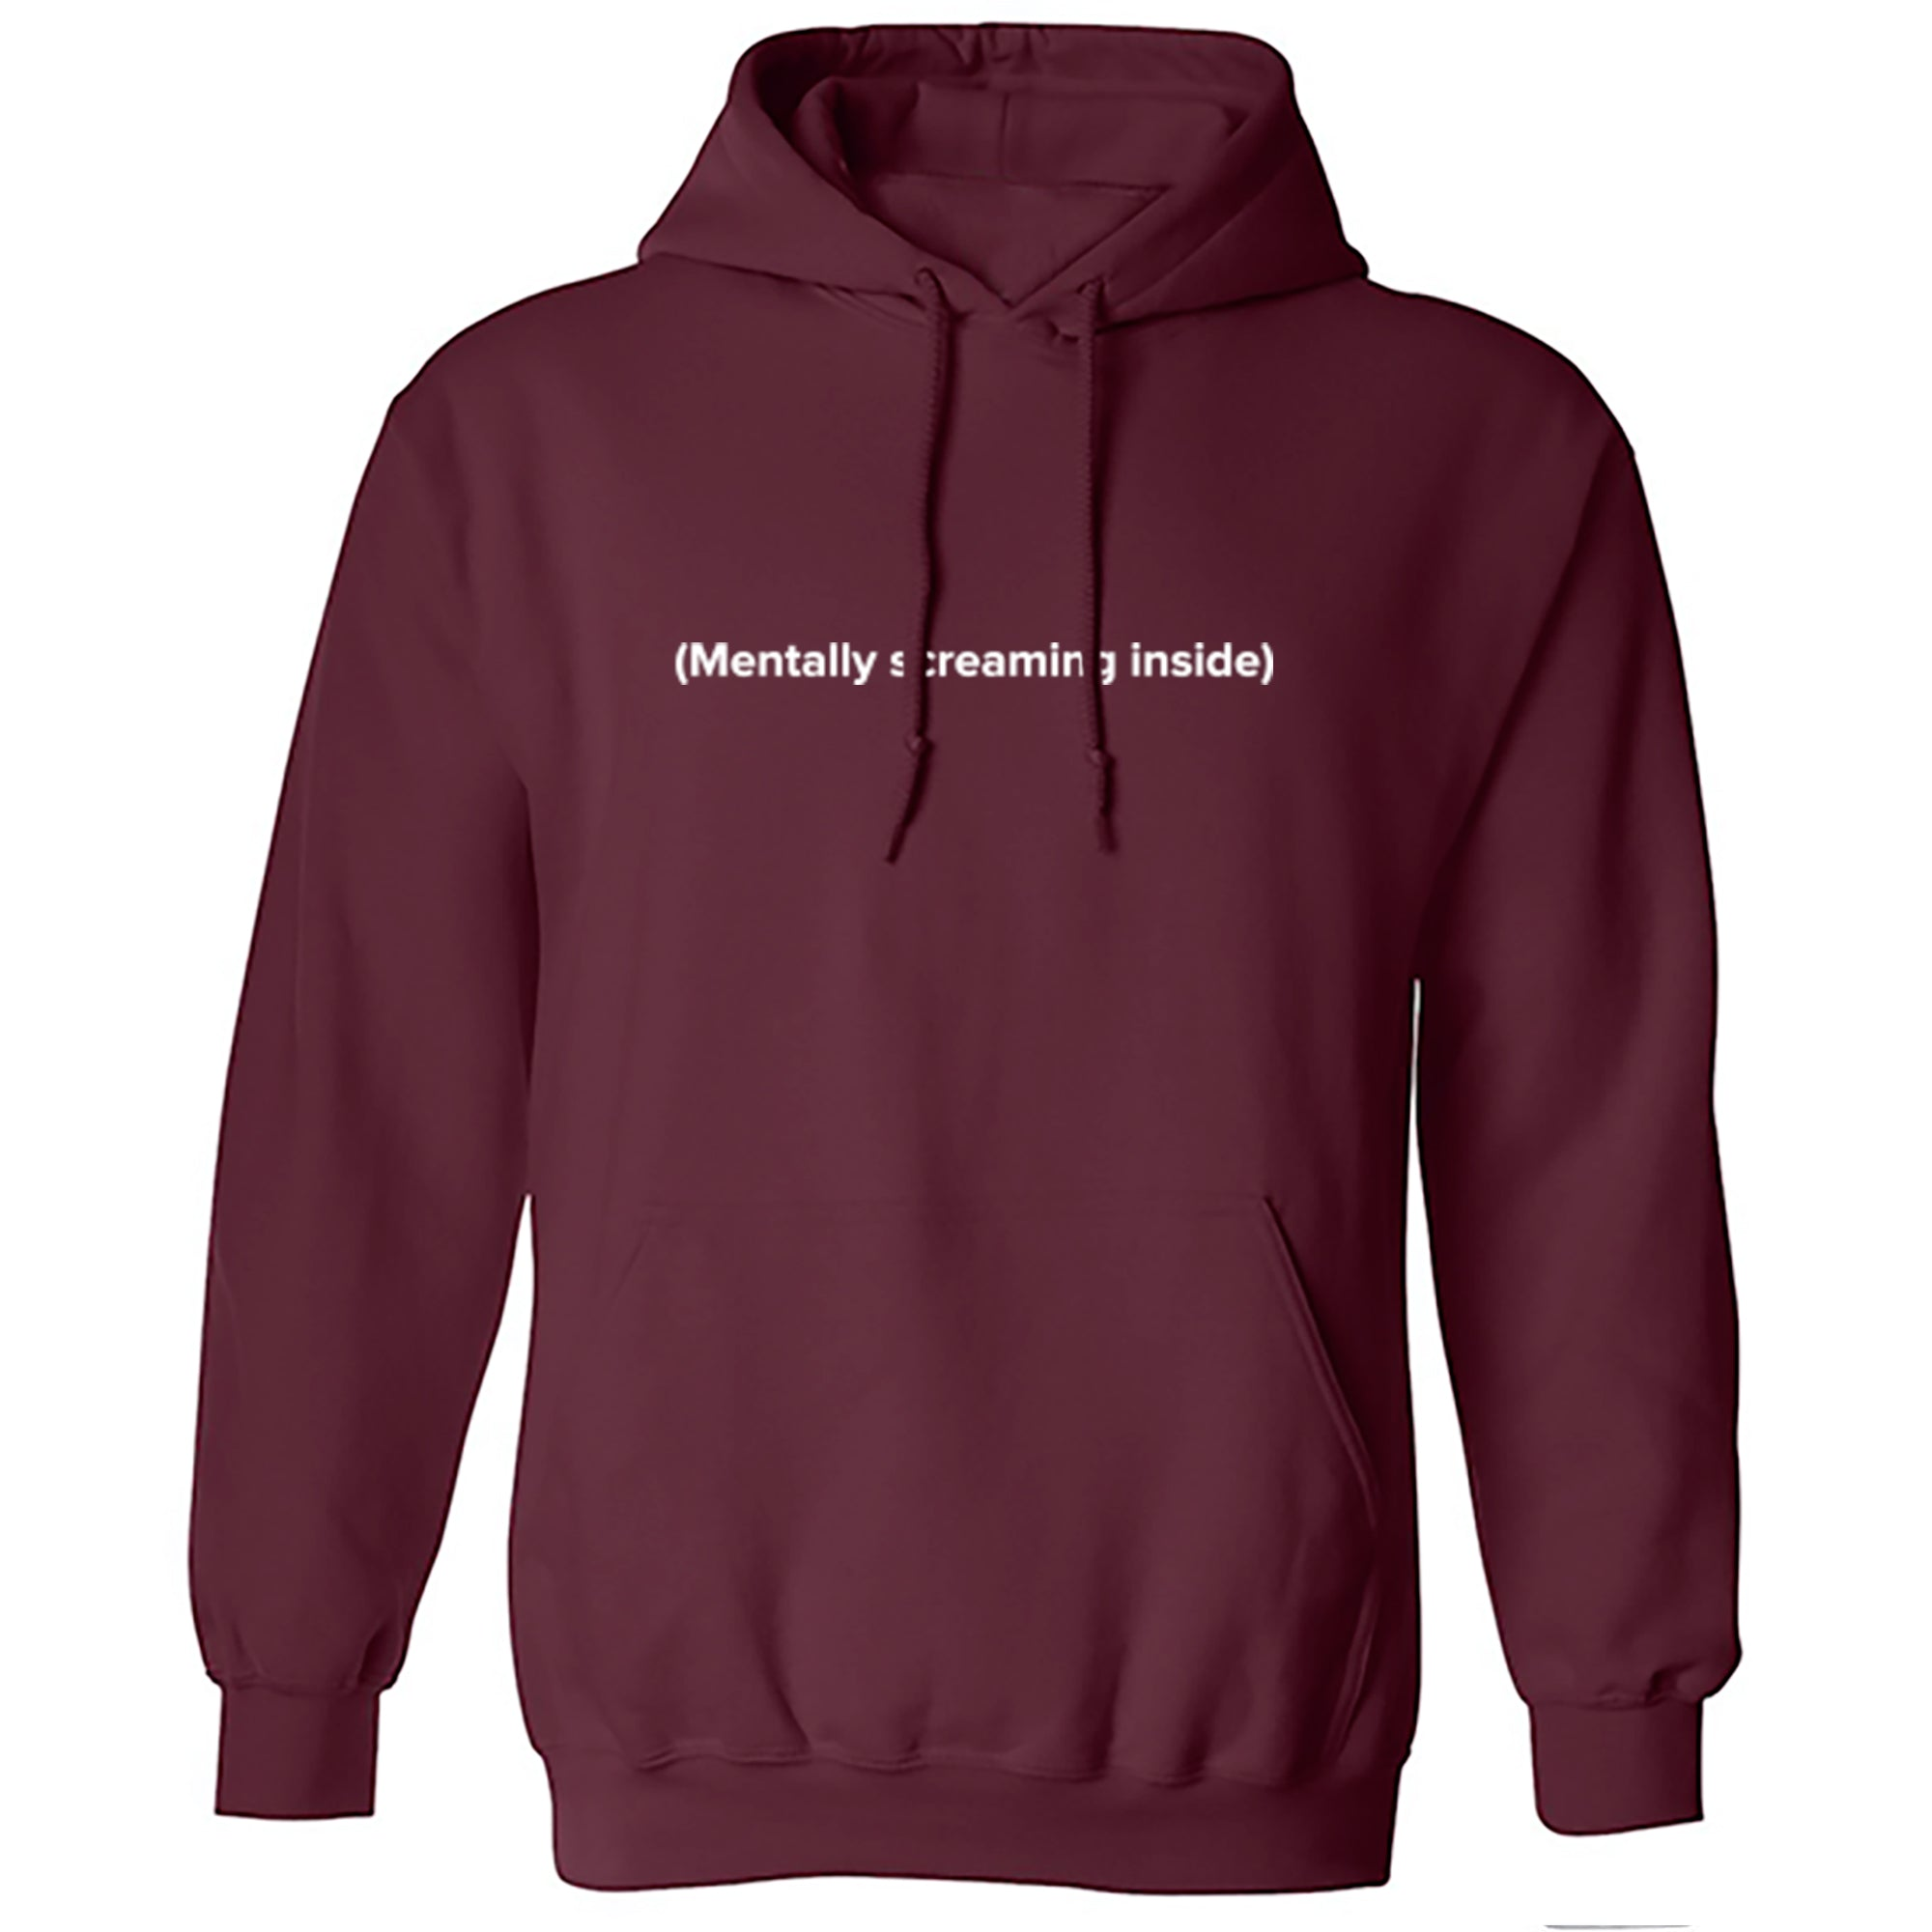 (Mentally Screaming Inside) Unisex Hoodie S1144 - Illustrated Identity Ltd.